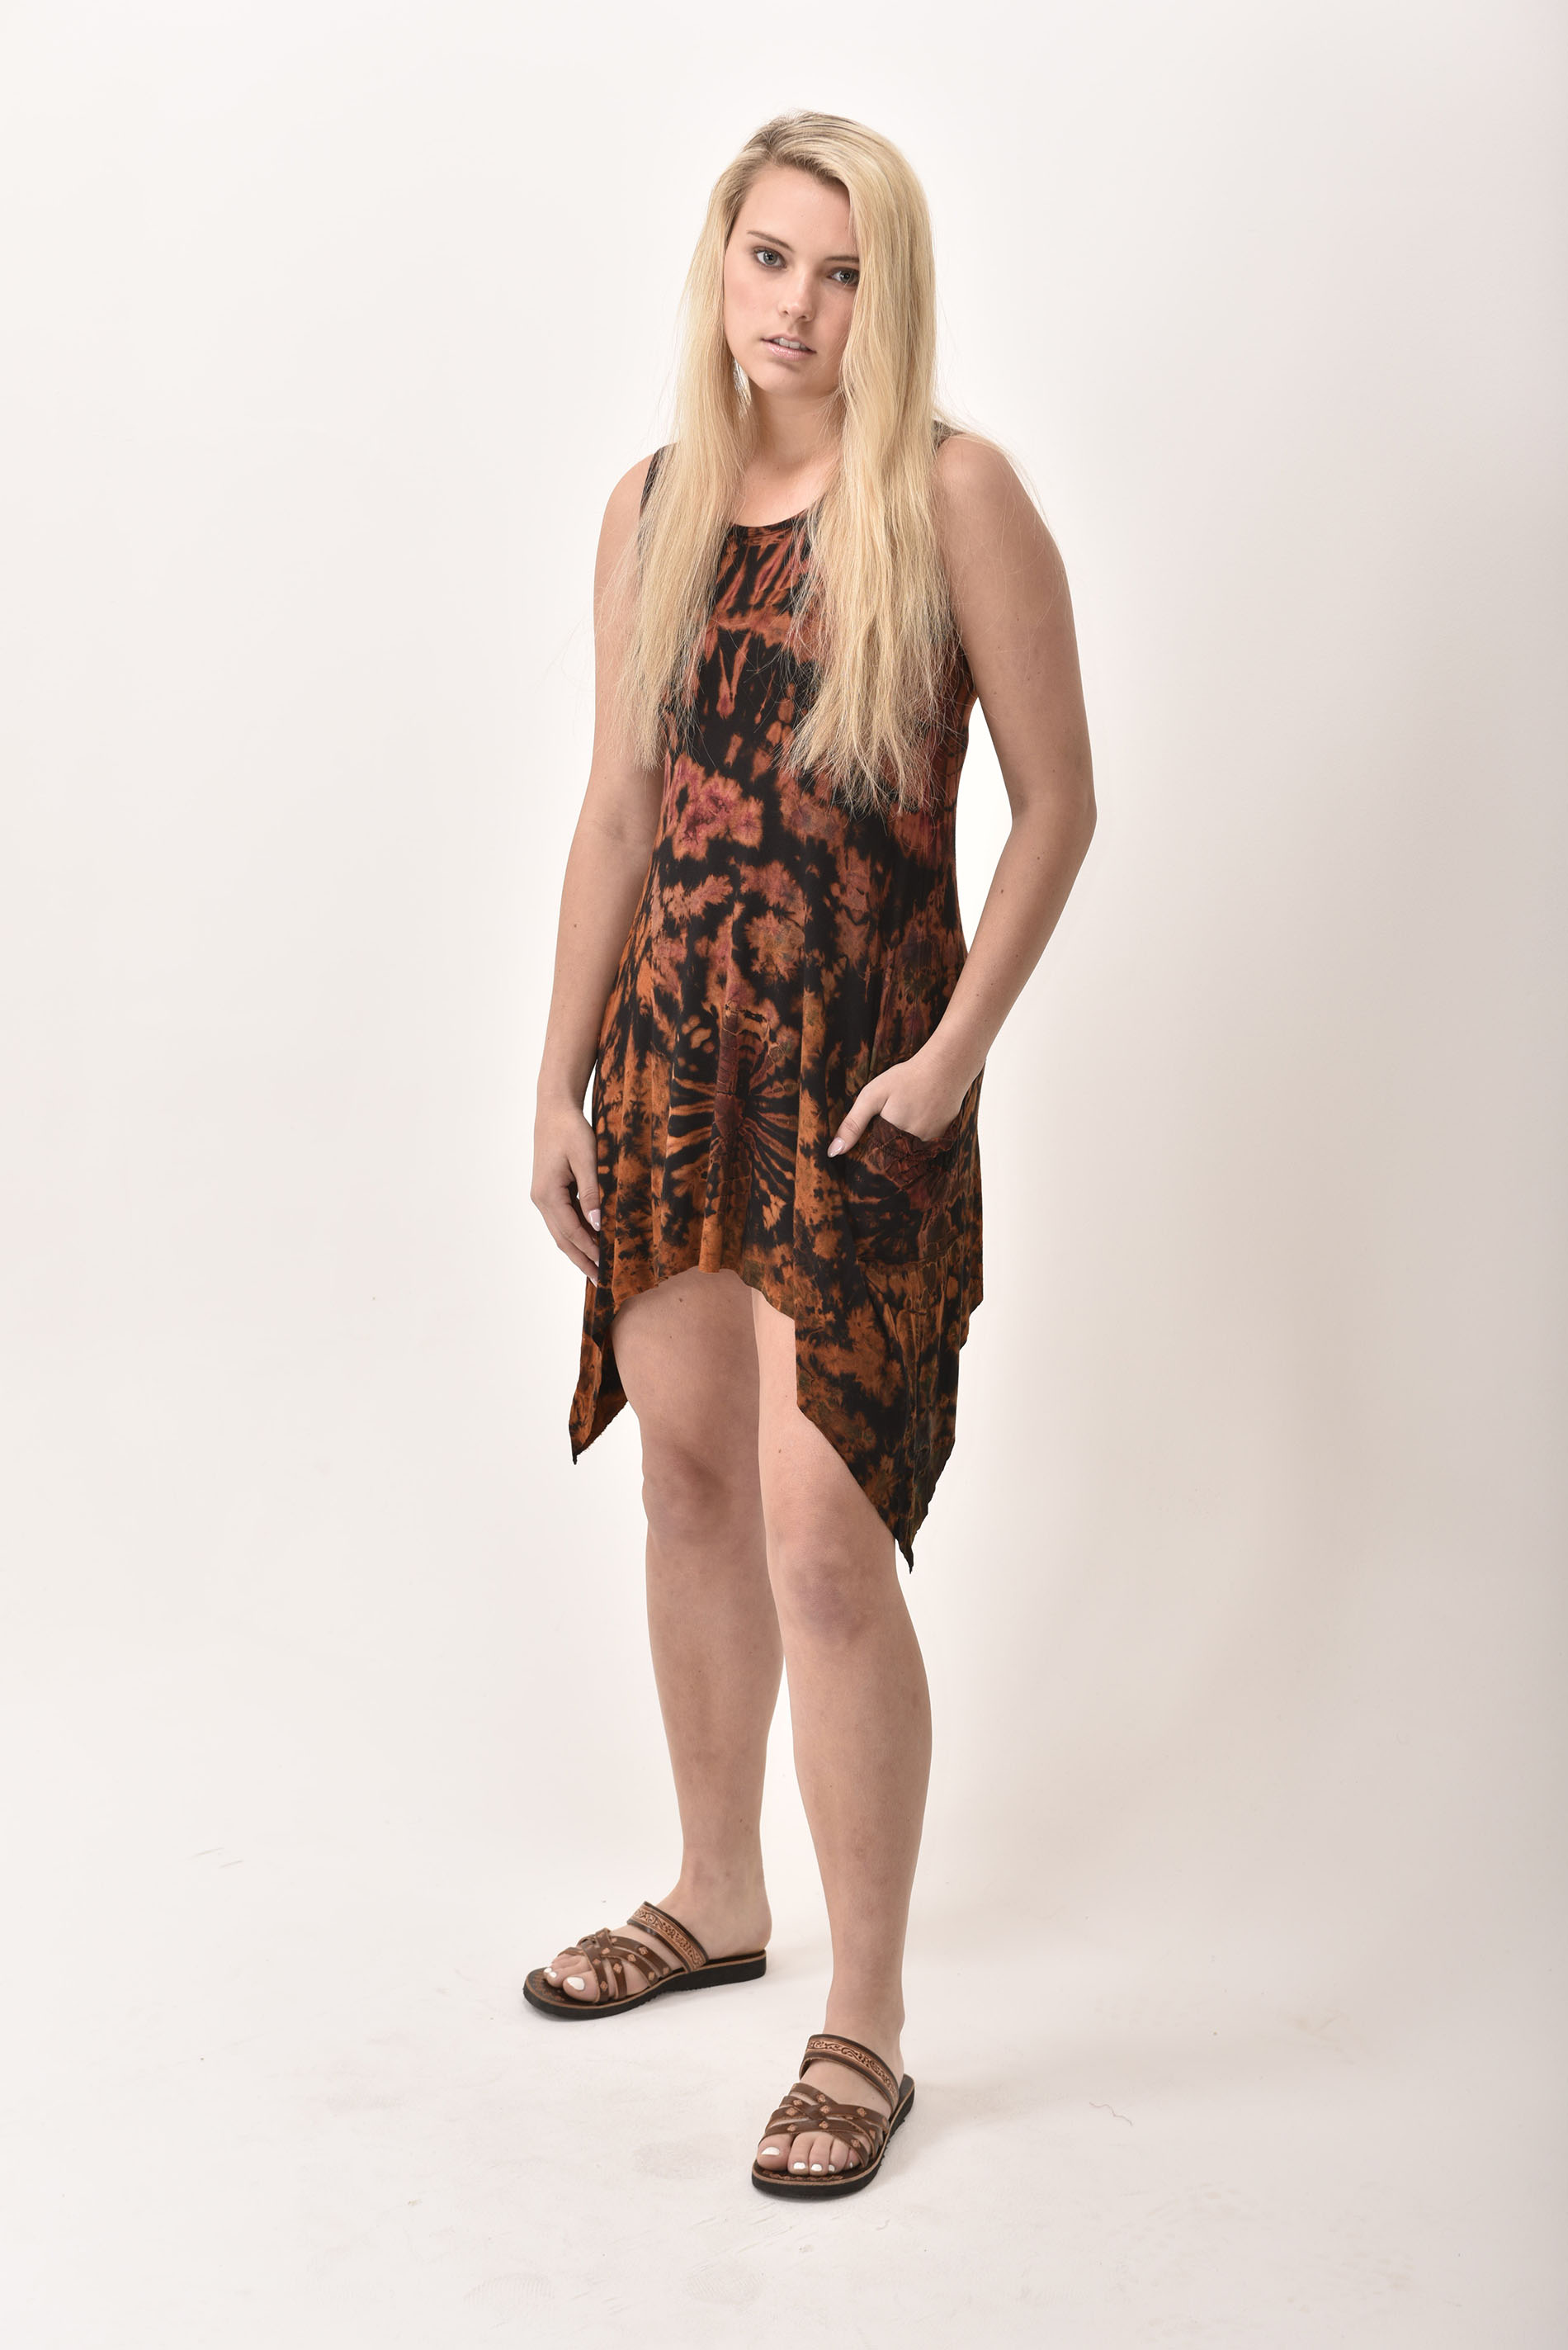 Pocket Sundress, Hand Painted Tie Dye, Black Tan Multi